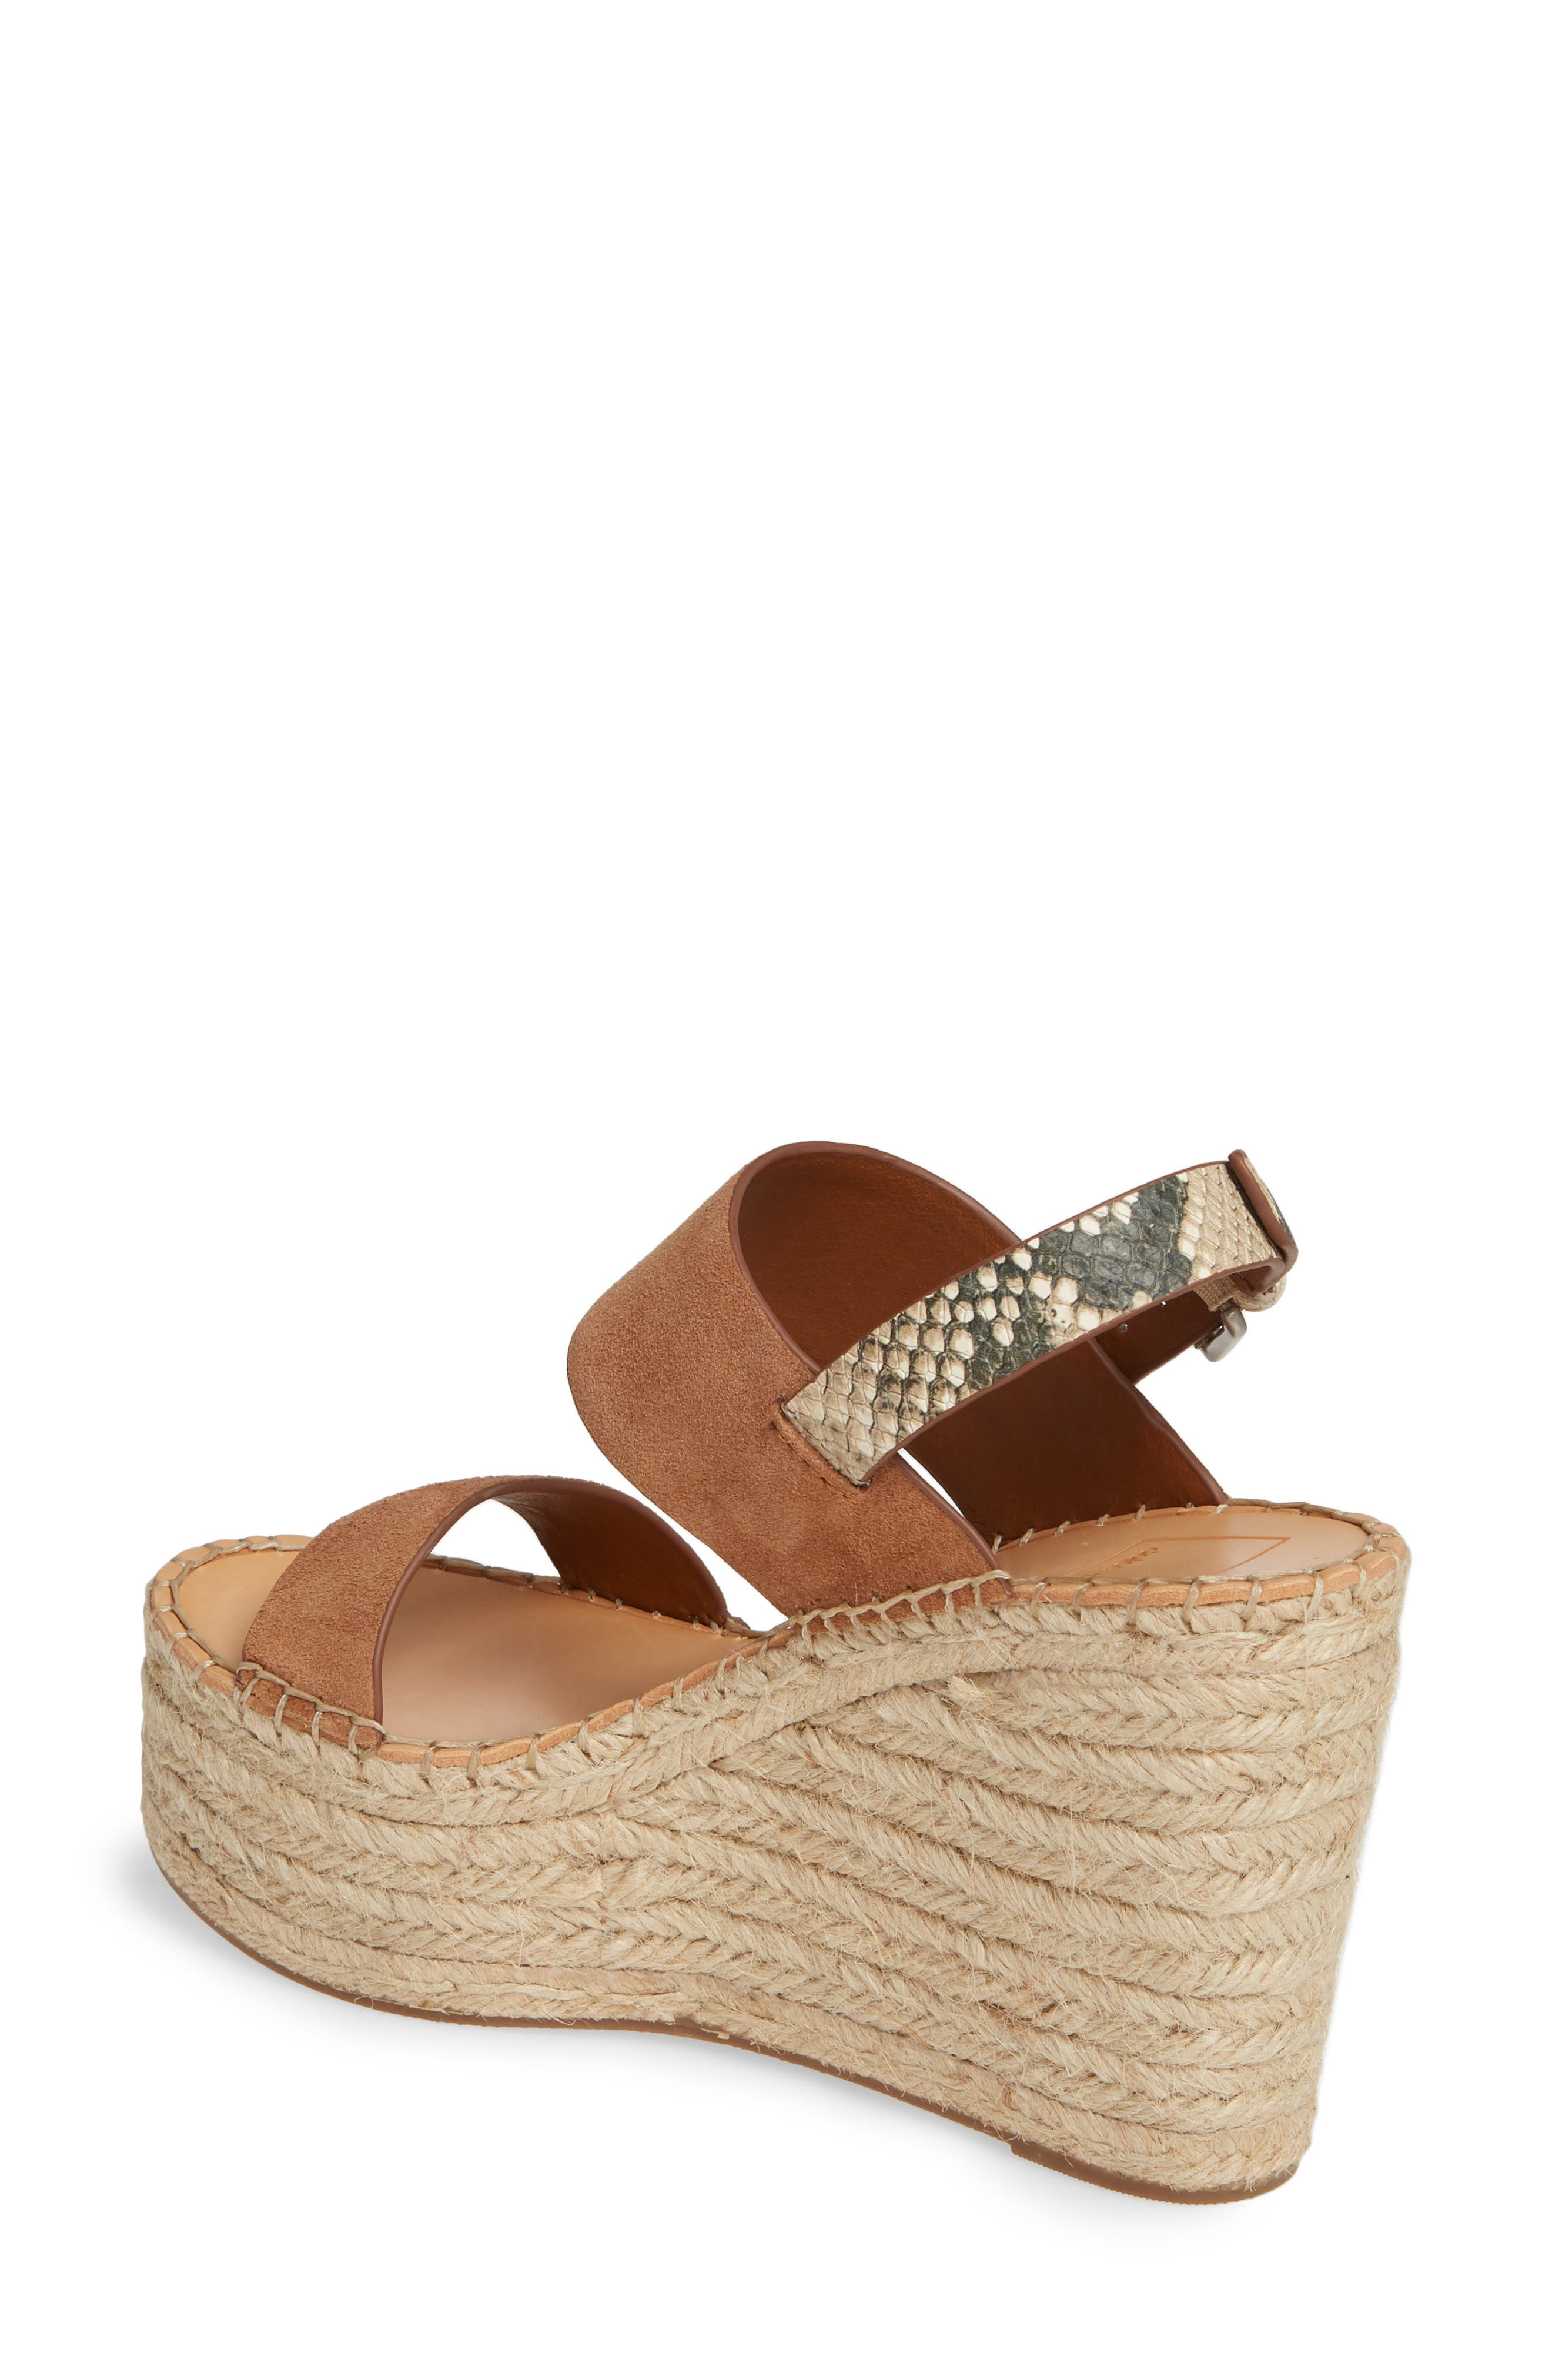 DOLCE VITA, Spiro Platform Wedge Sandal, Alternate thumbnail 2, color, BROWN SUEDE